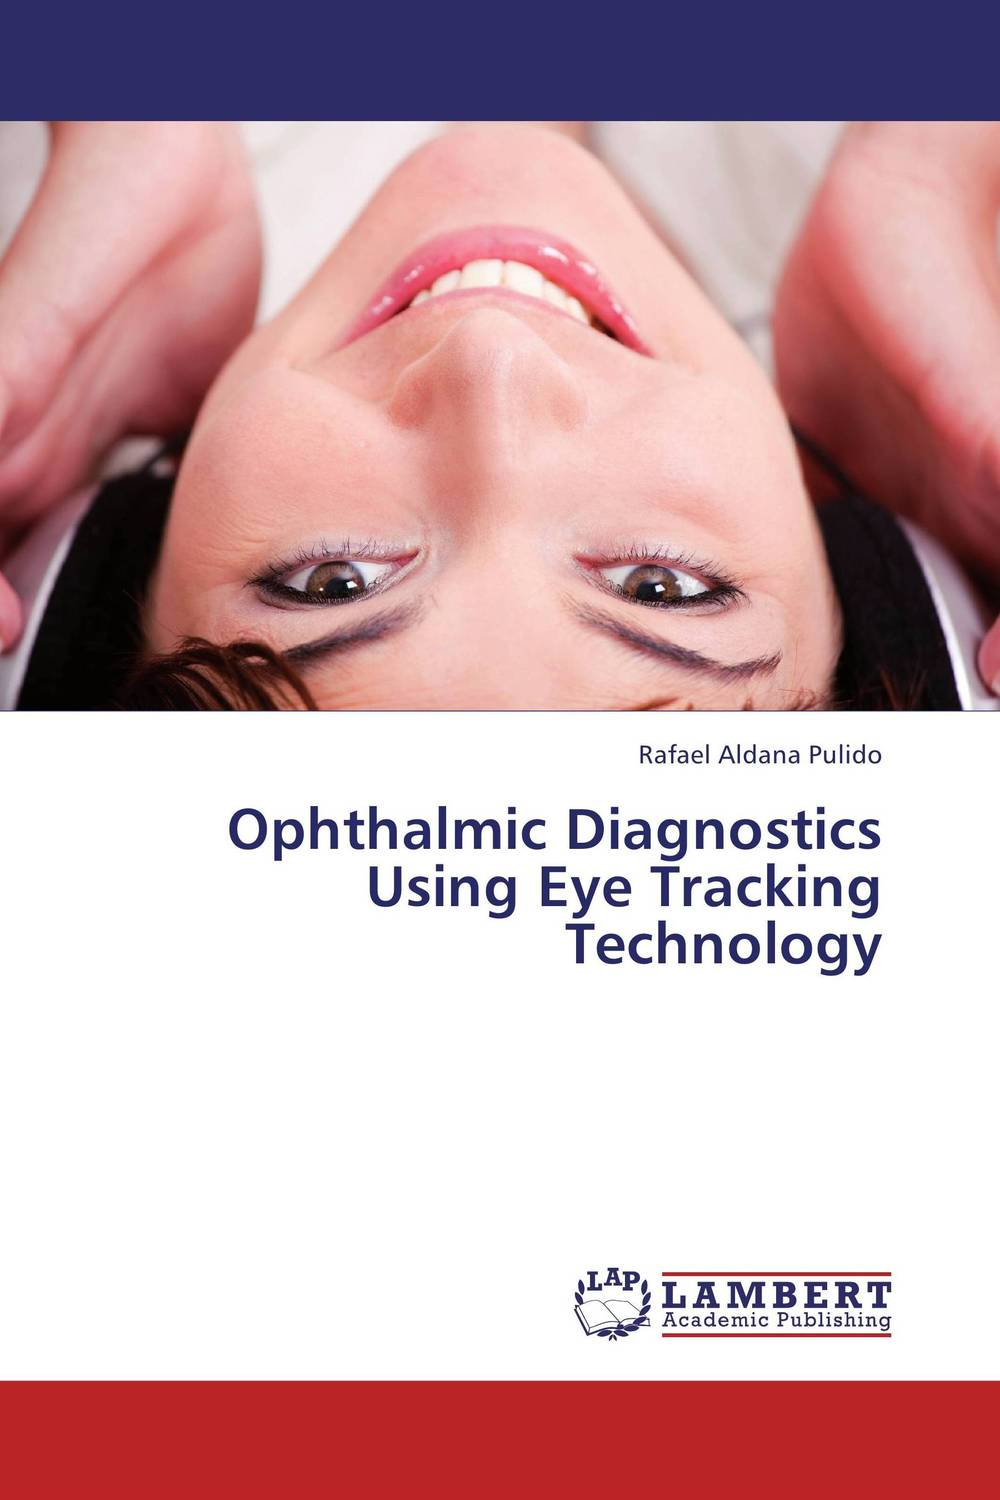 Ophthalmic Diagnostics Using Eye Tracking Technology